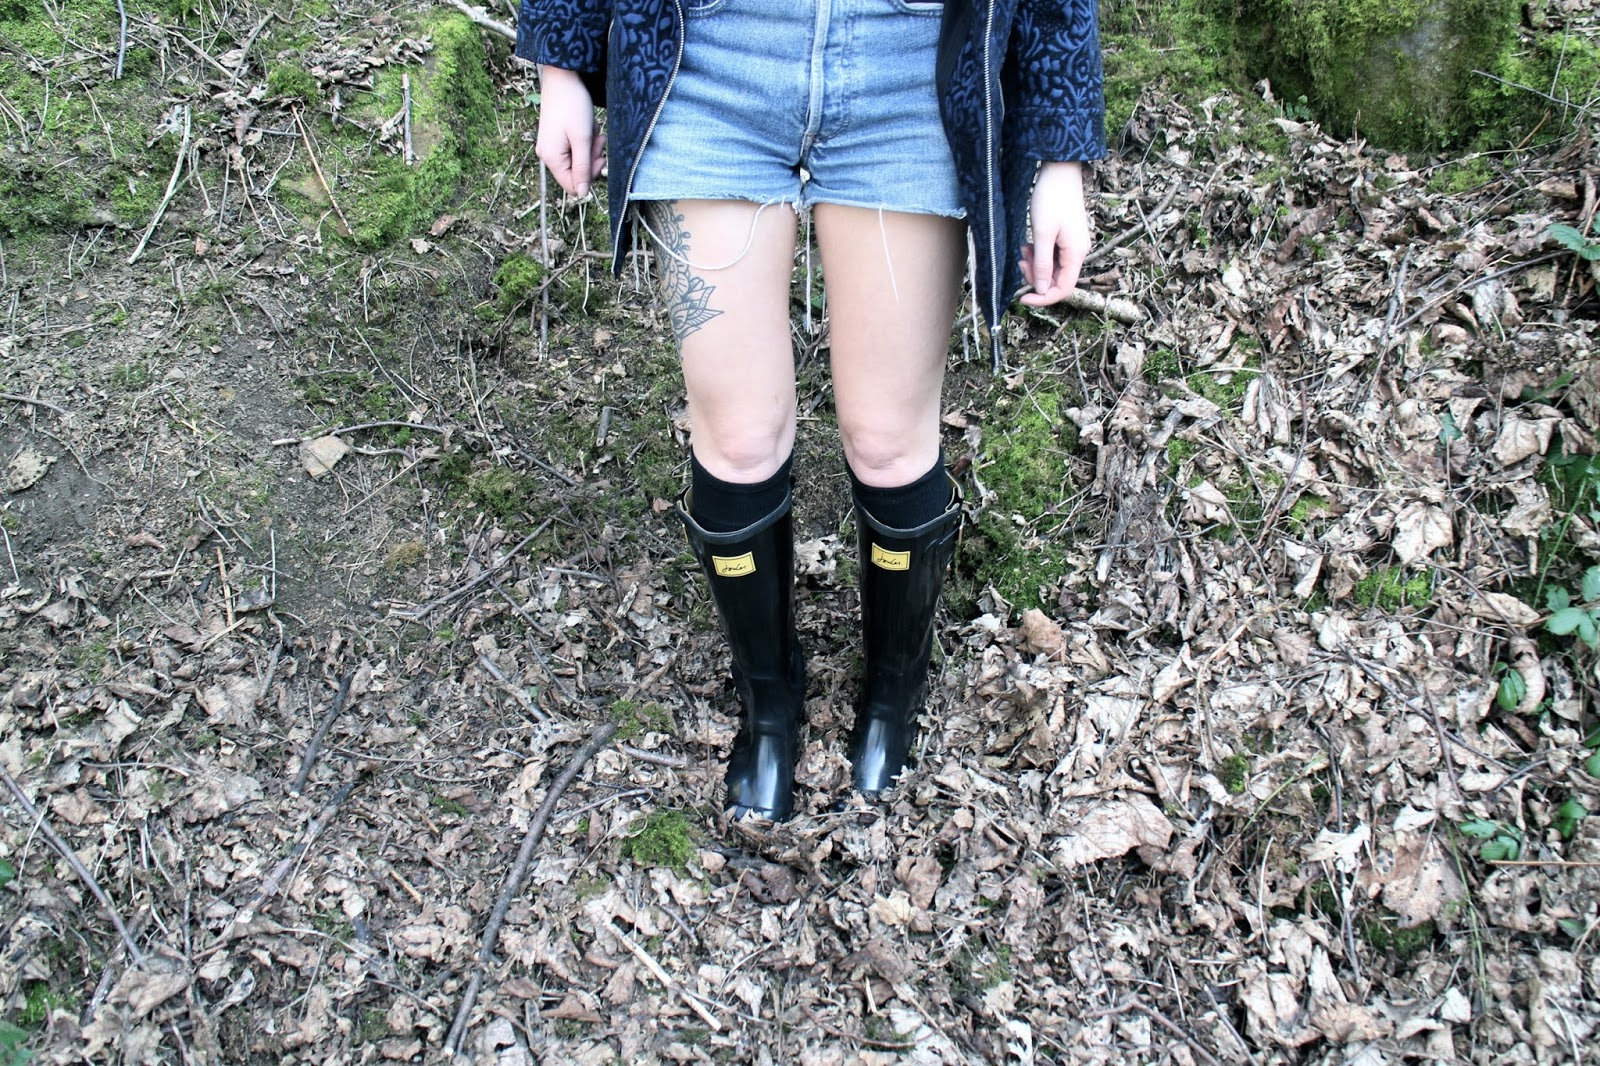 Festival fashion with vintage shorts, wellies and tattoos